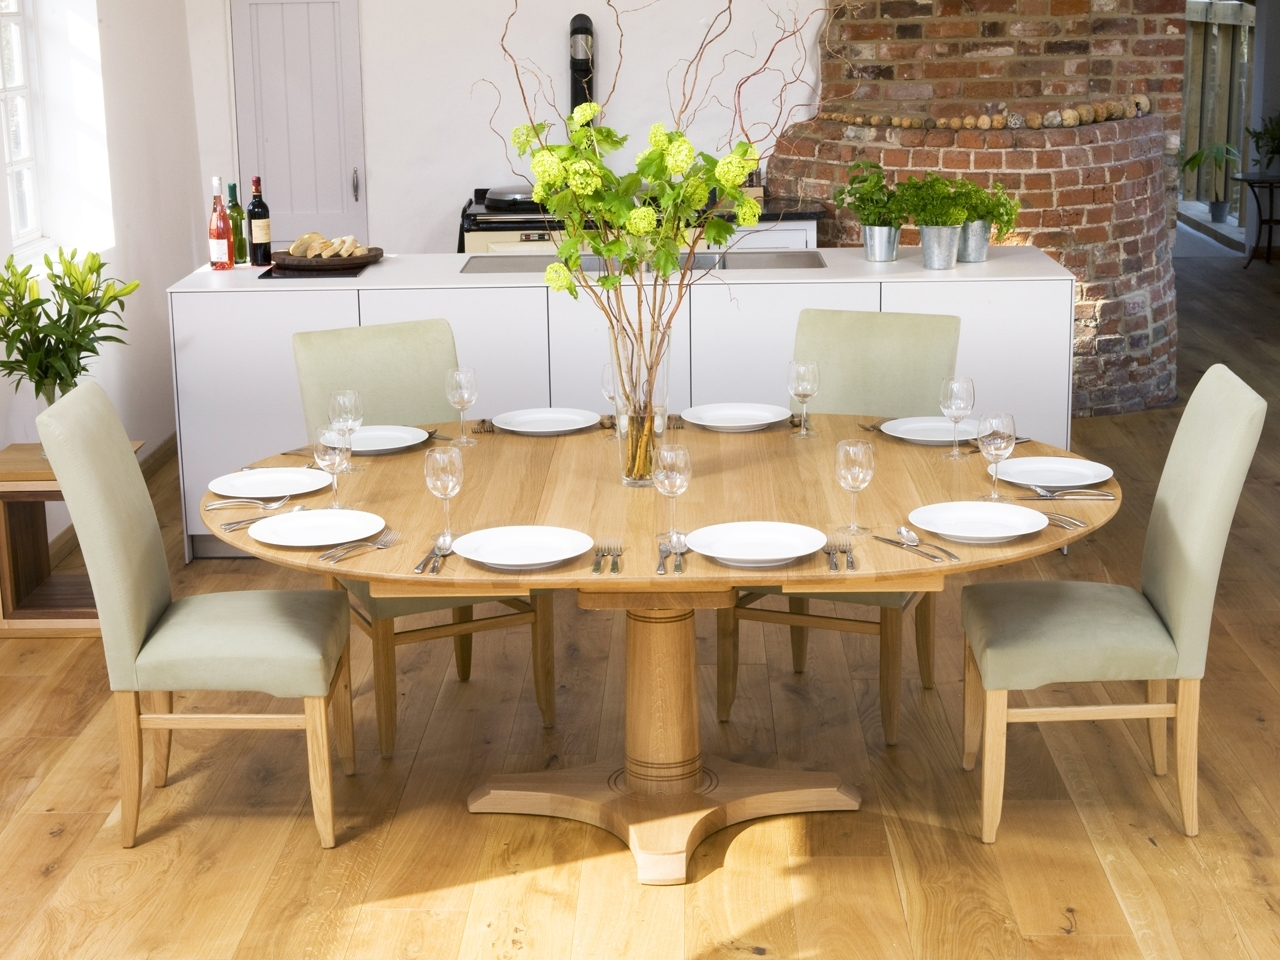 Berrydesign And The Ideal Home Show Intended For Newest Small Round Extending Dining Tables (View 2 of 25)